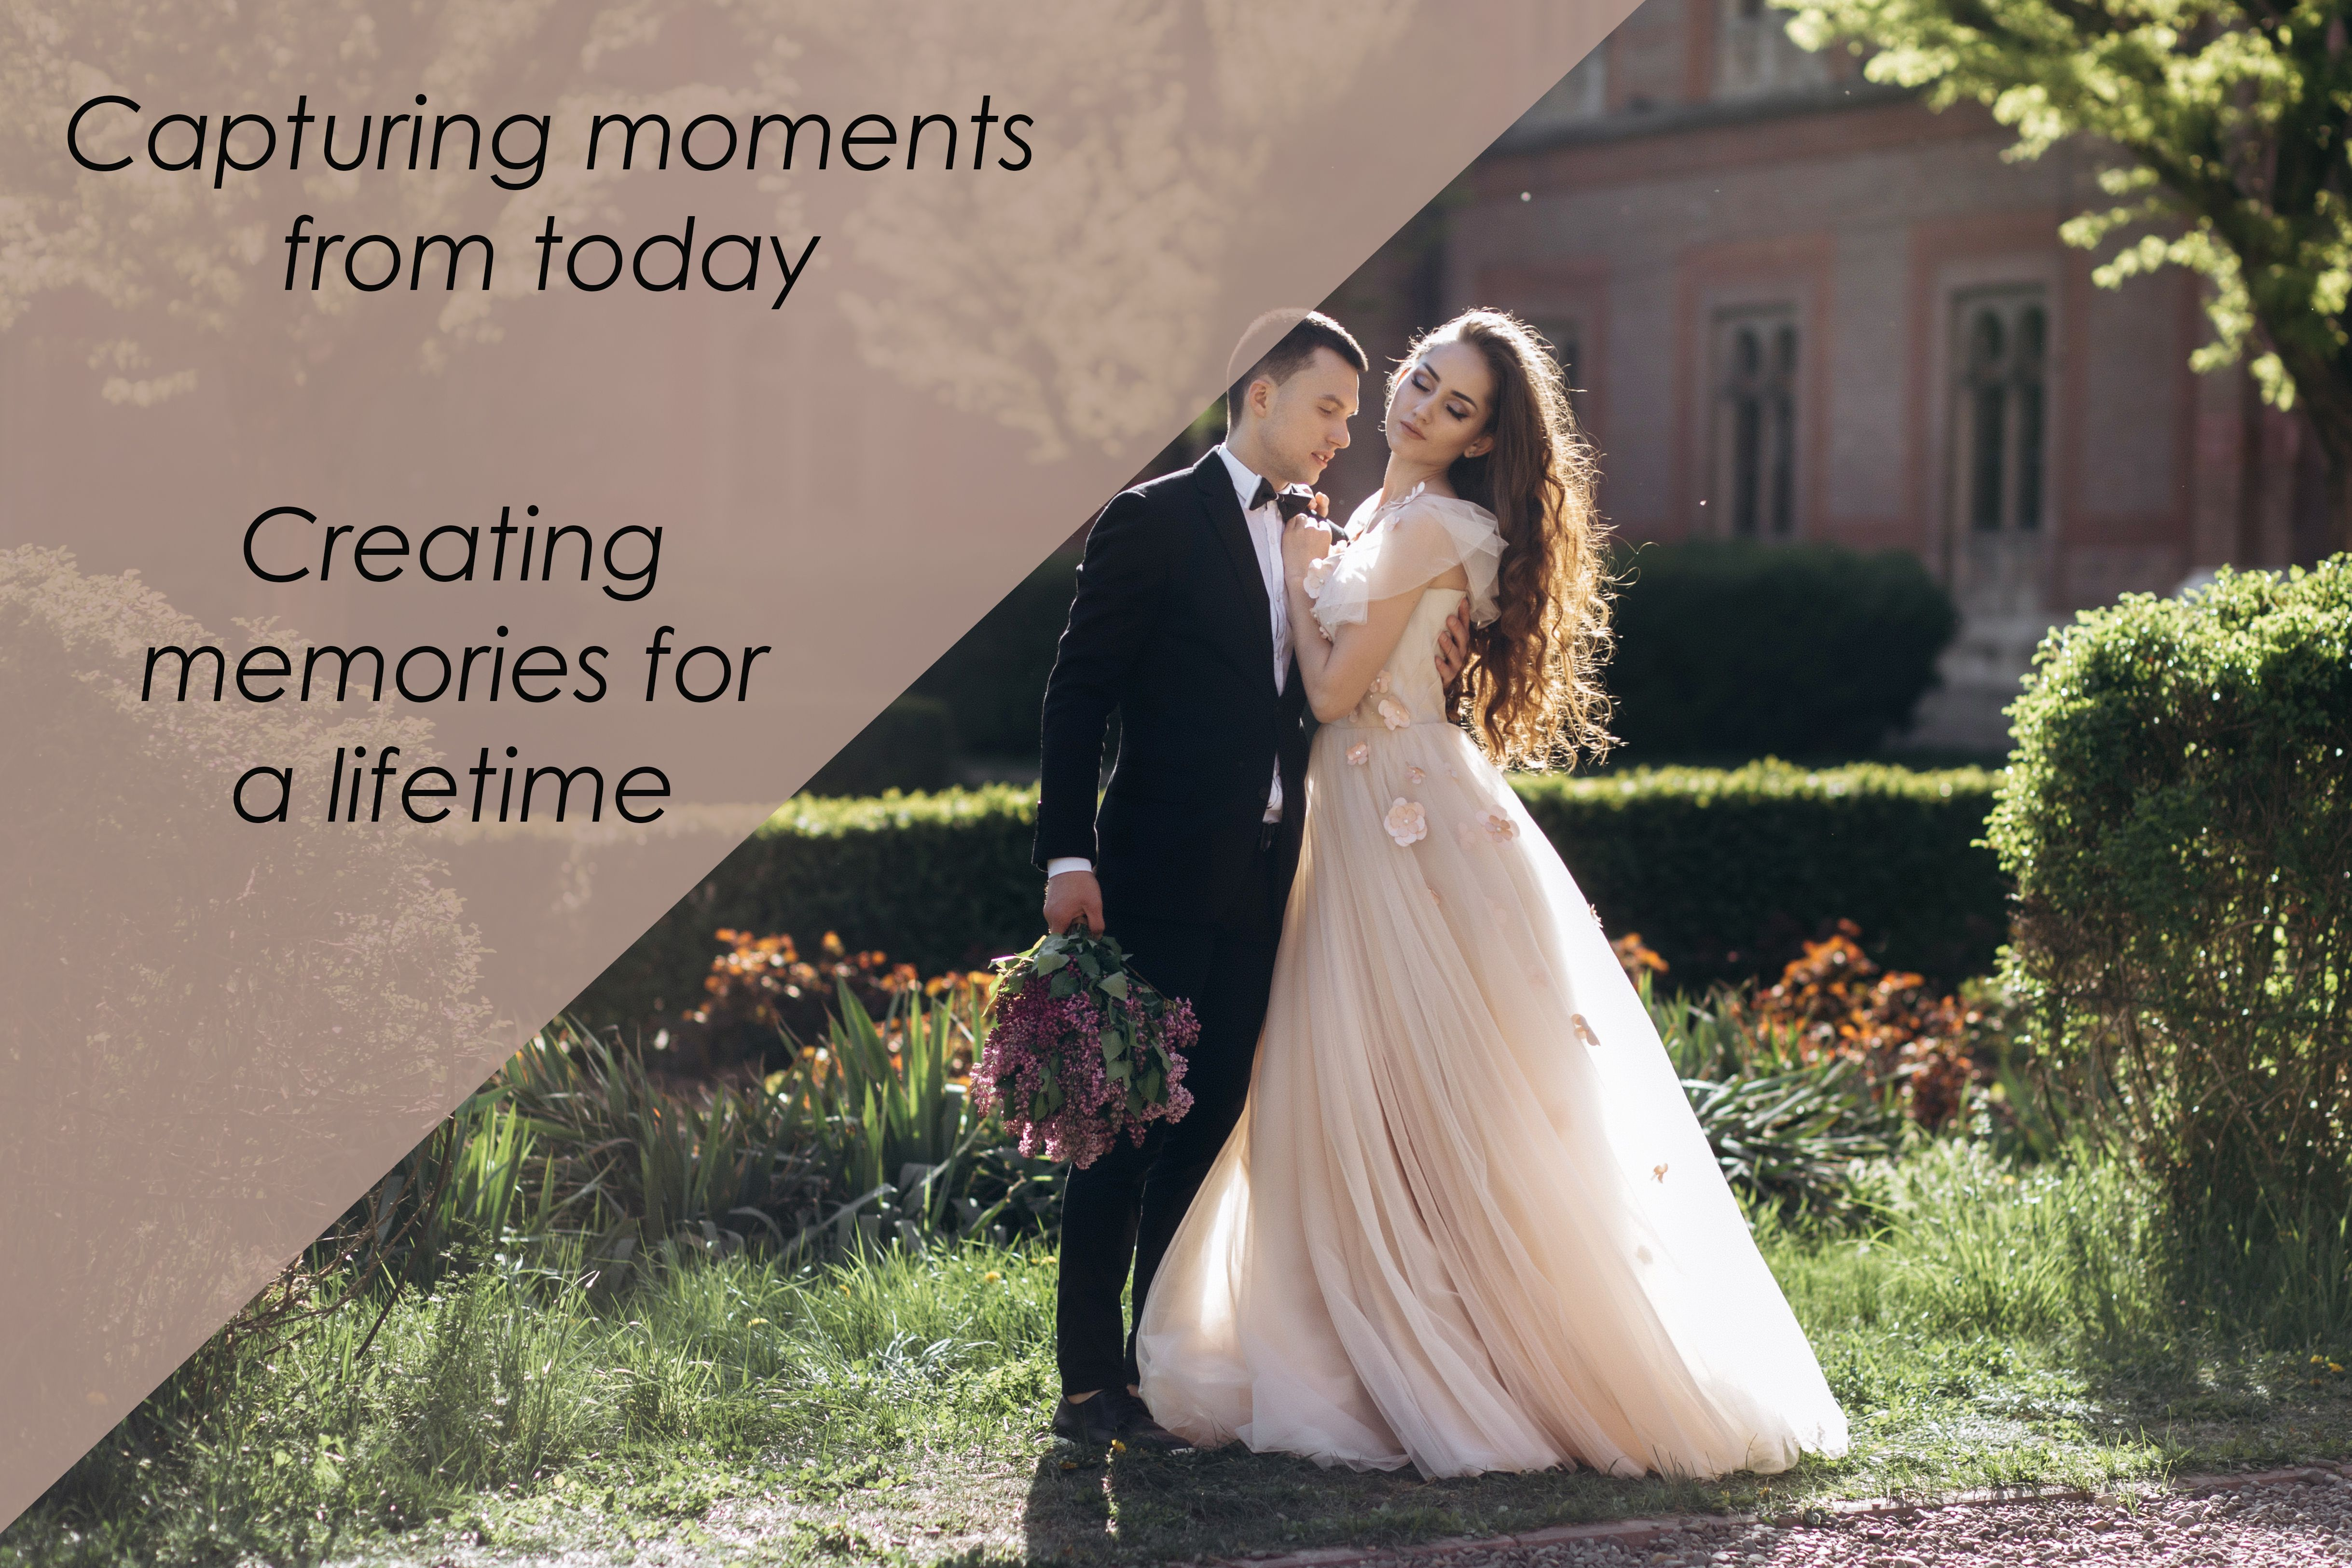 We tell your story of love and passion with our skilled